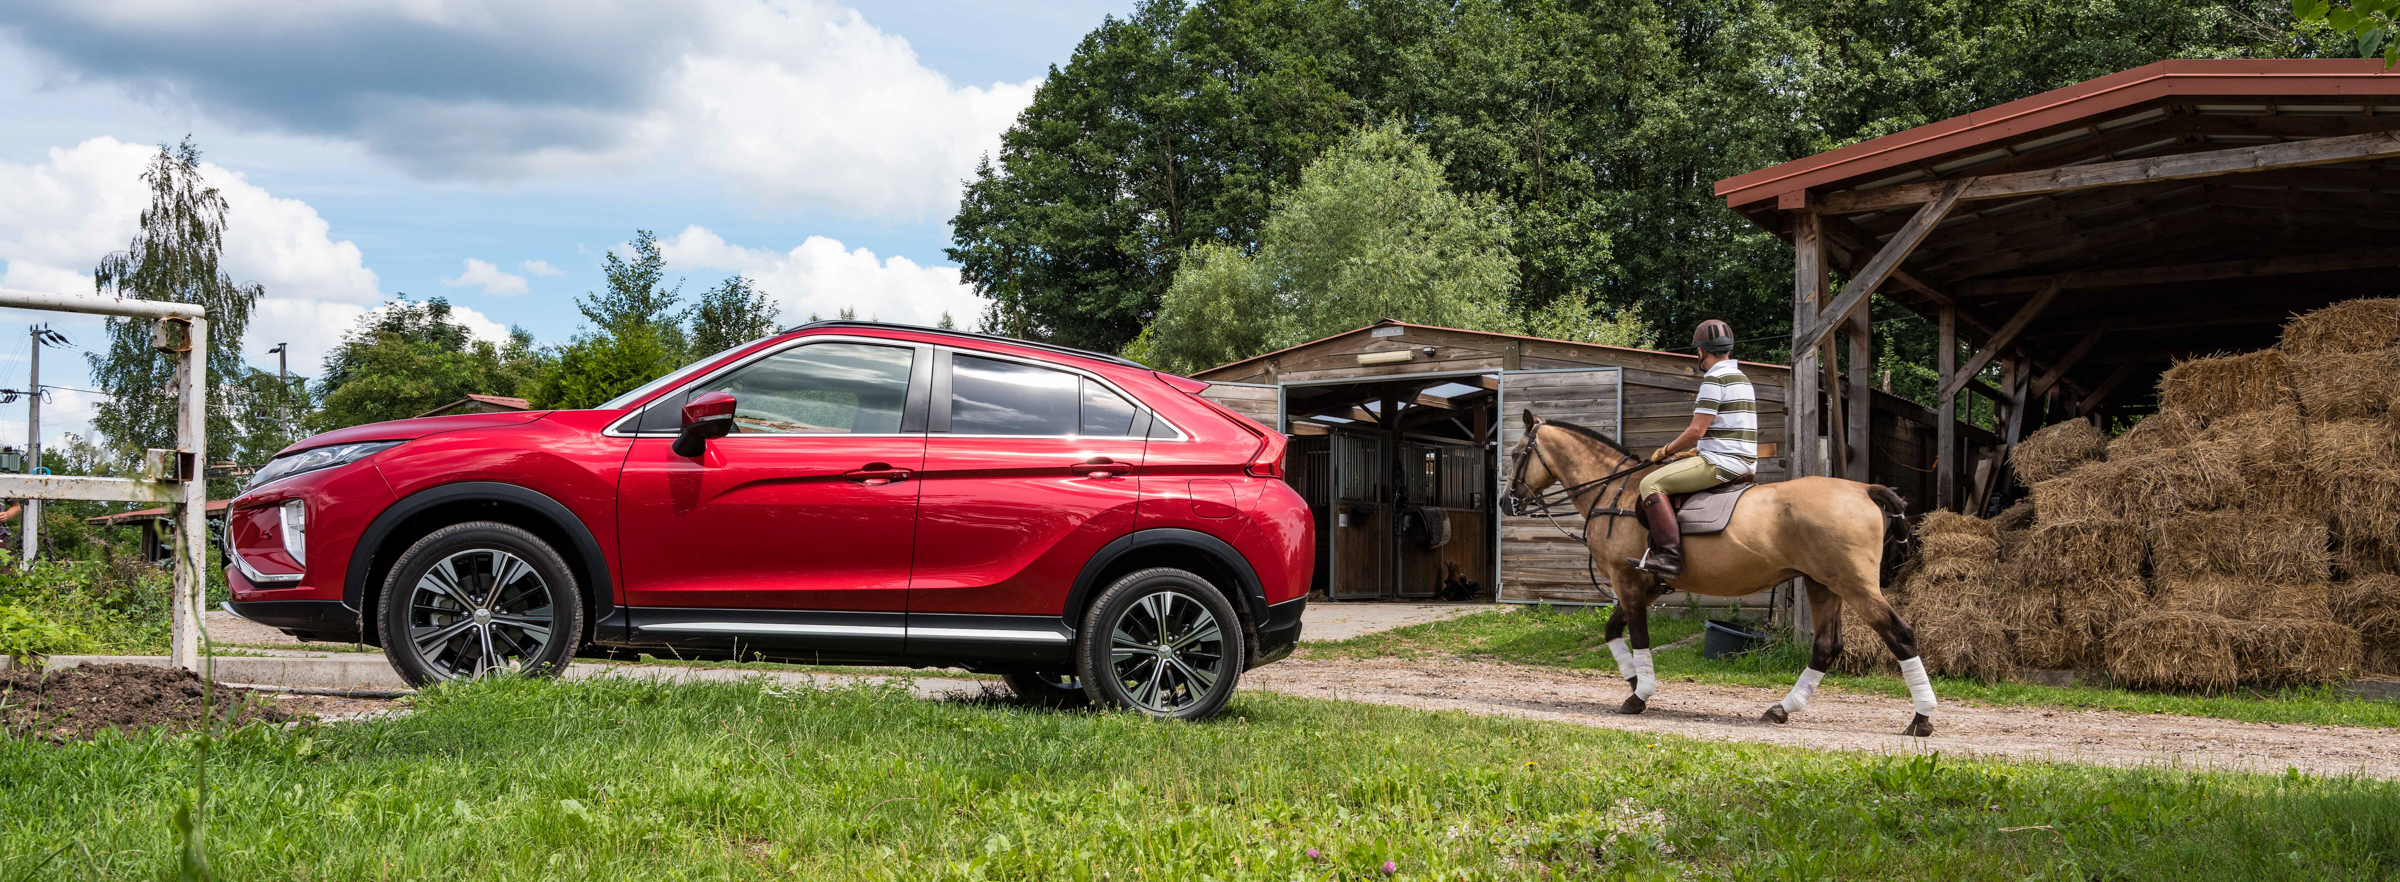 Mitsubishi_Eclipse_Cross_gra_w_polo  62jpg